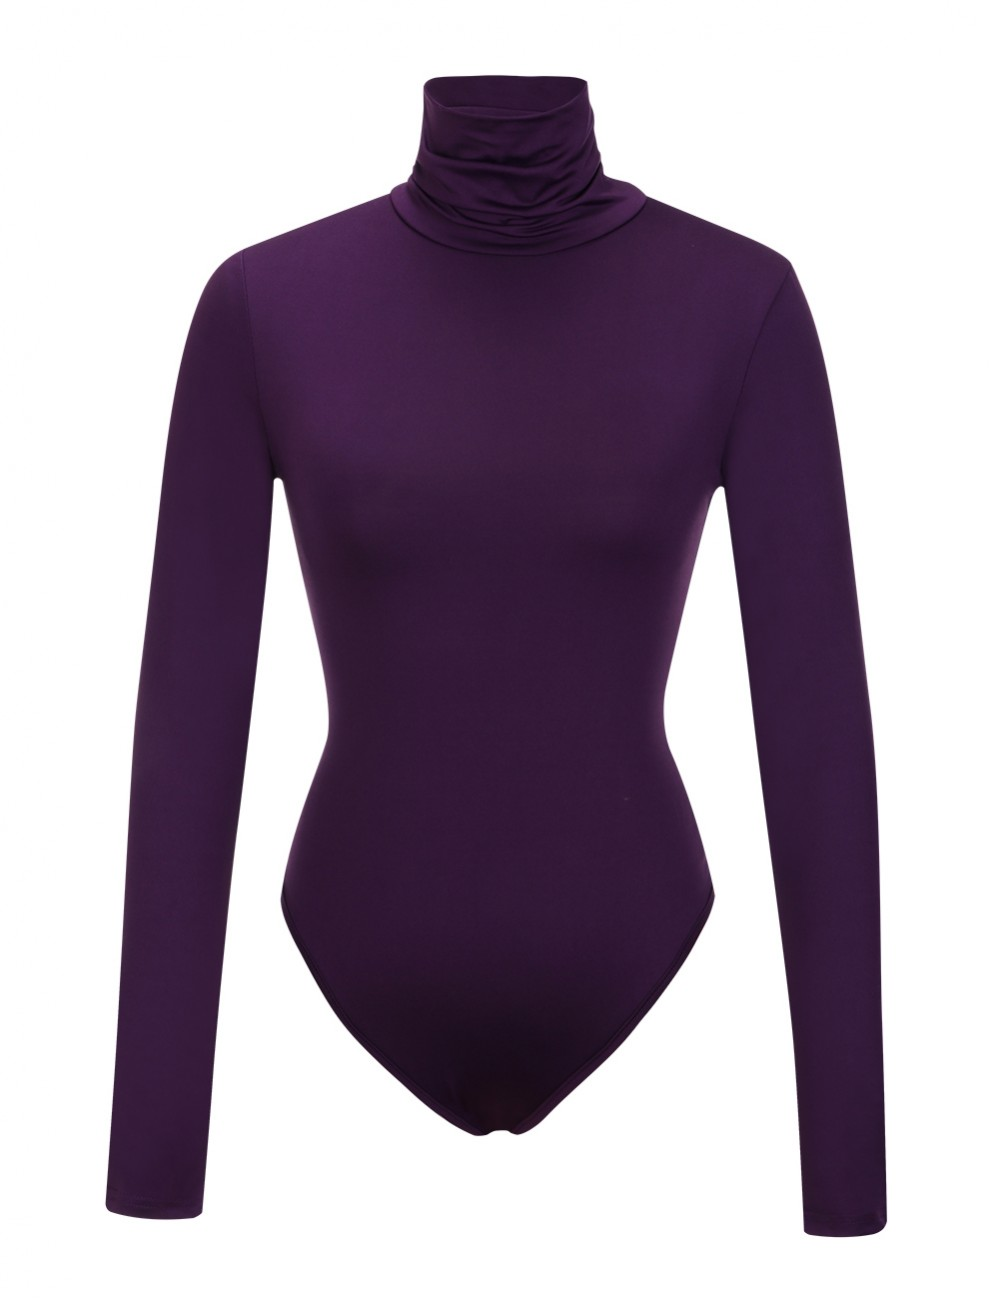 Fabulously Purple One Piece High Cut Bodysuit Snap Button For Girls